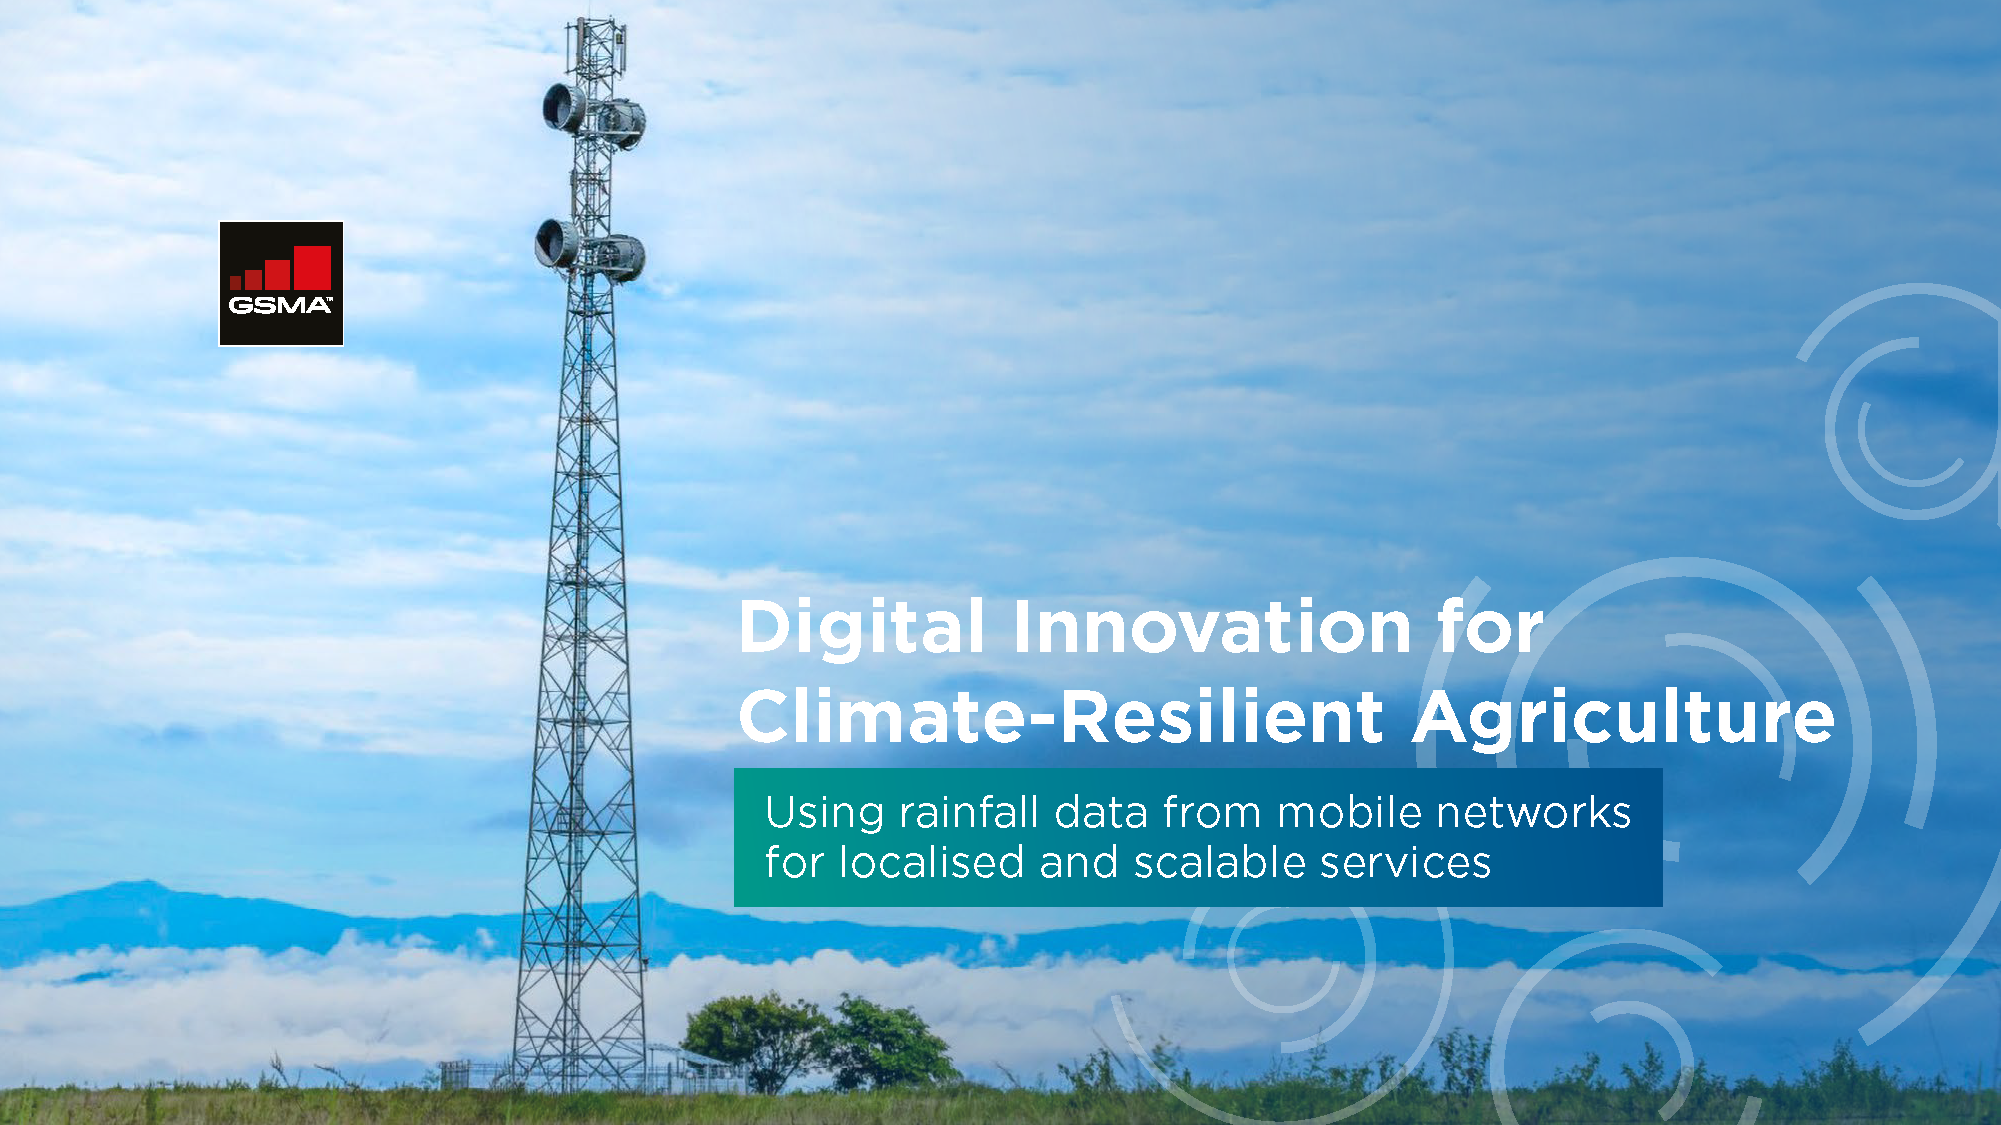 Digital Innovation for Climate-Resilient Agriculture image